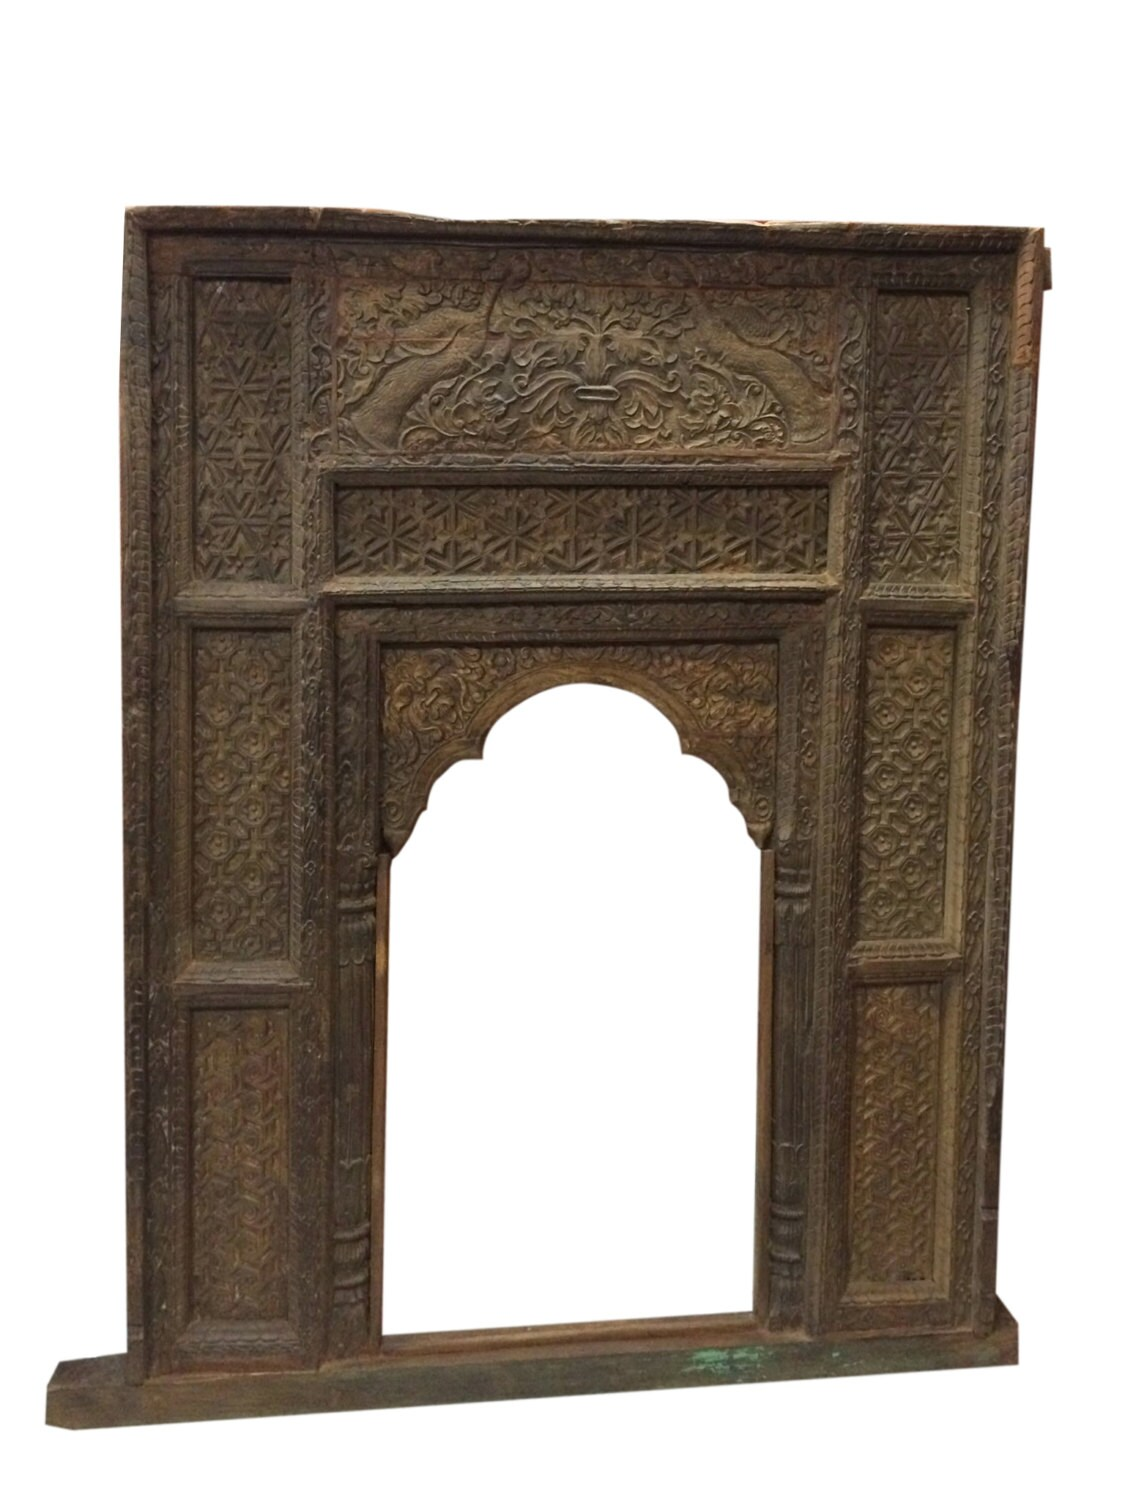 Antique Welcome Gate Arch Frame Teak Wood Pecock Carved Furniture Indian Inspired Haute Juice